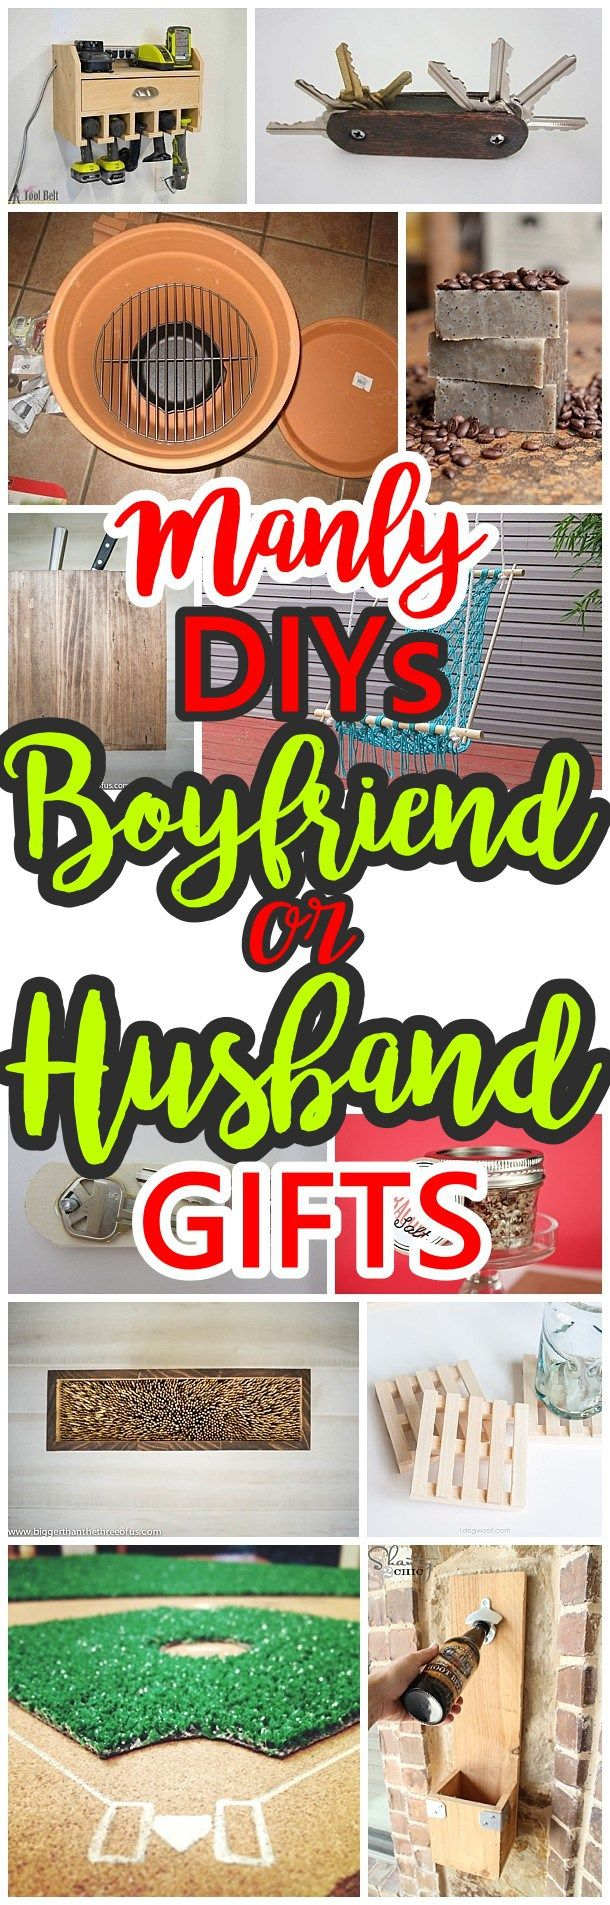 25+ unique Diy brother gift ideas on Pinterest | Homemade dad ...